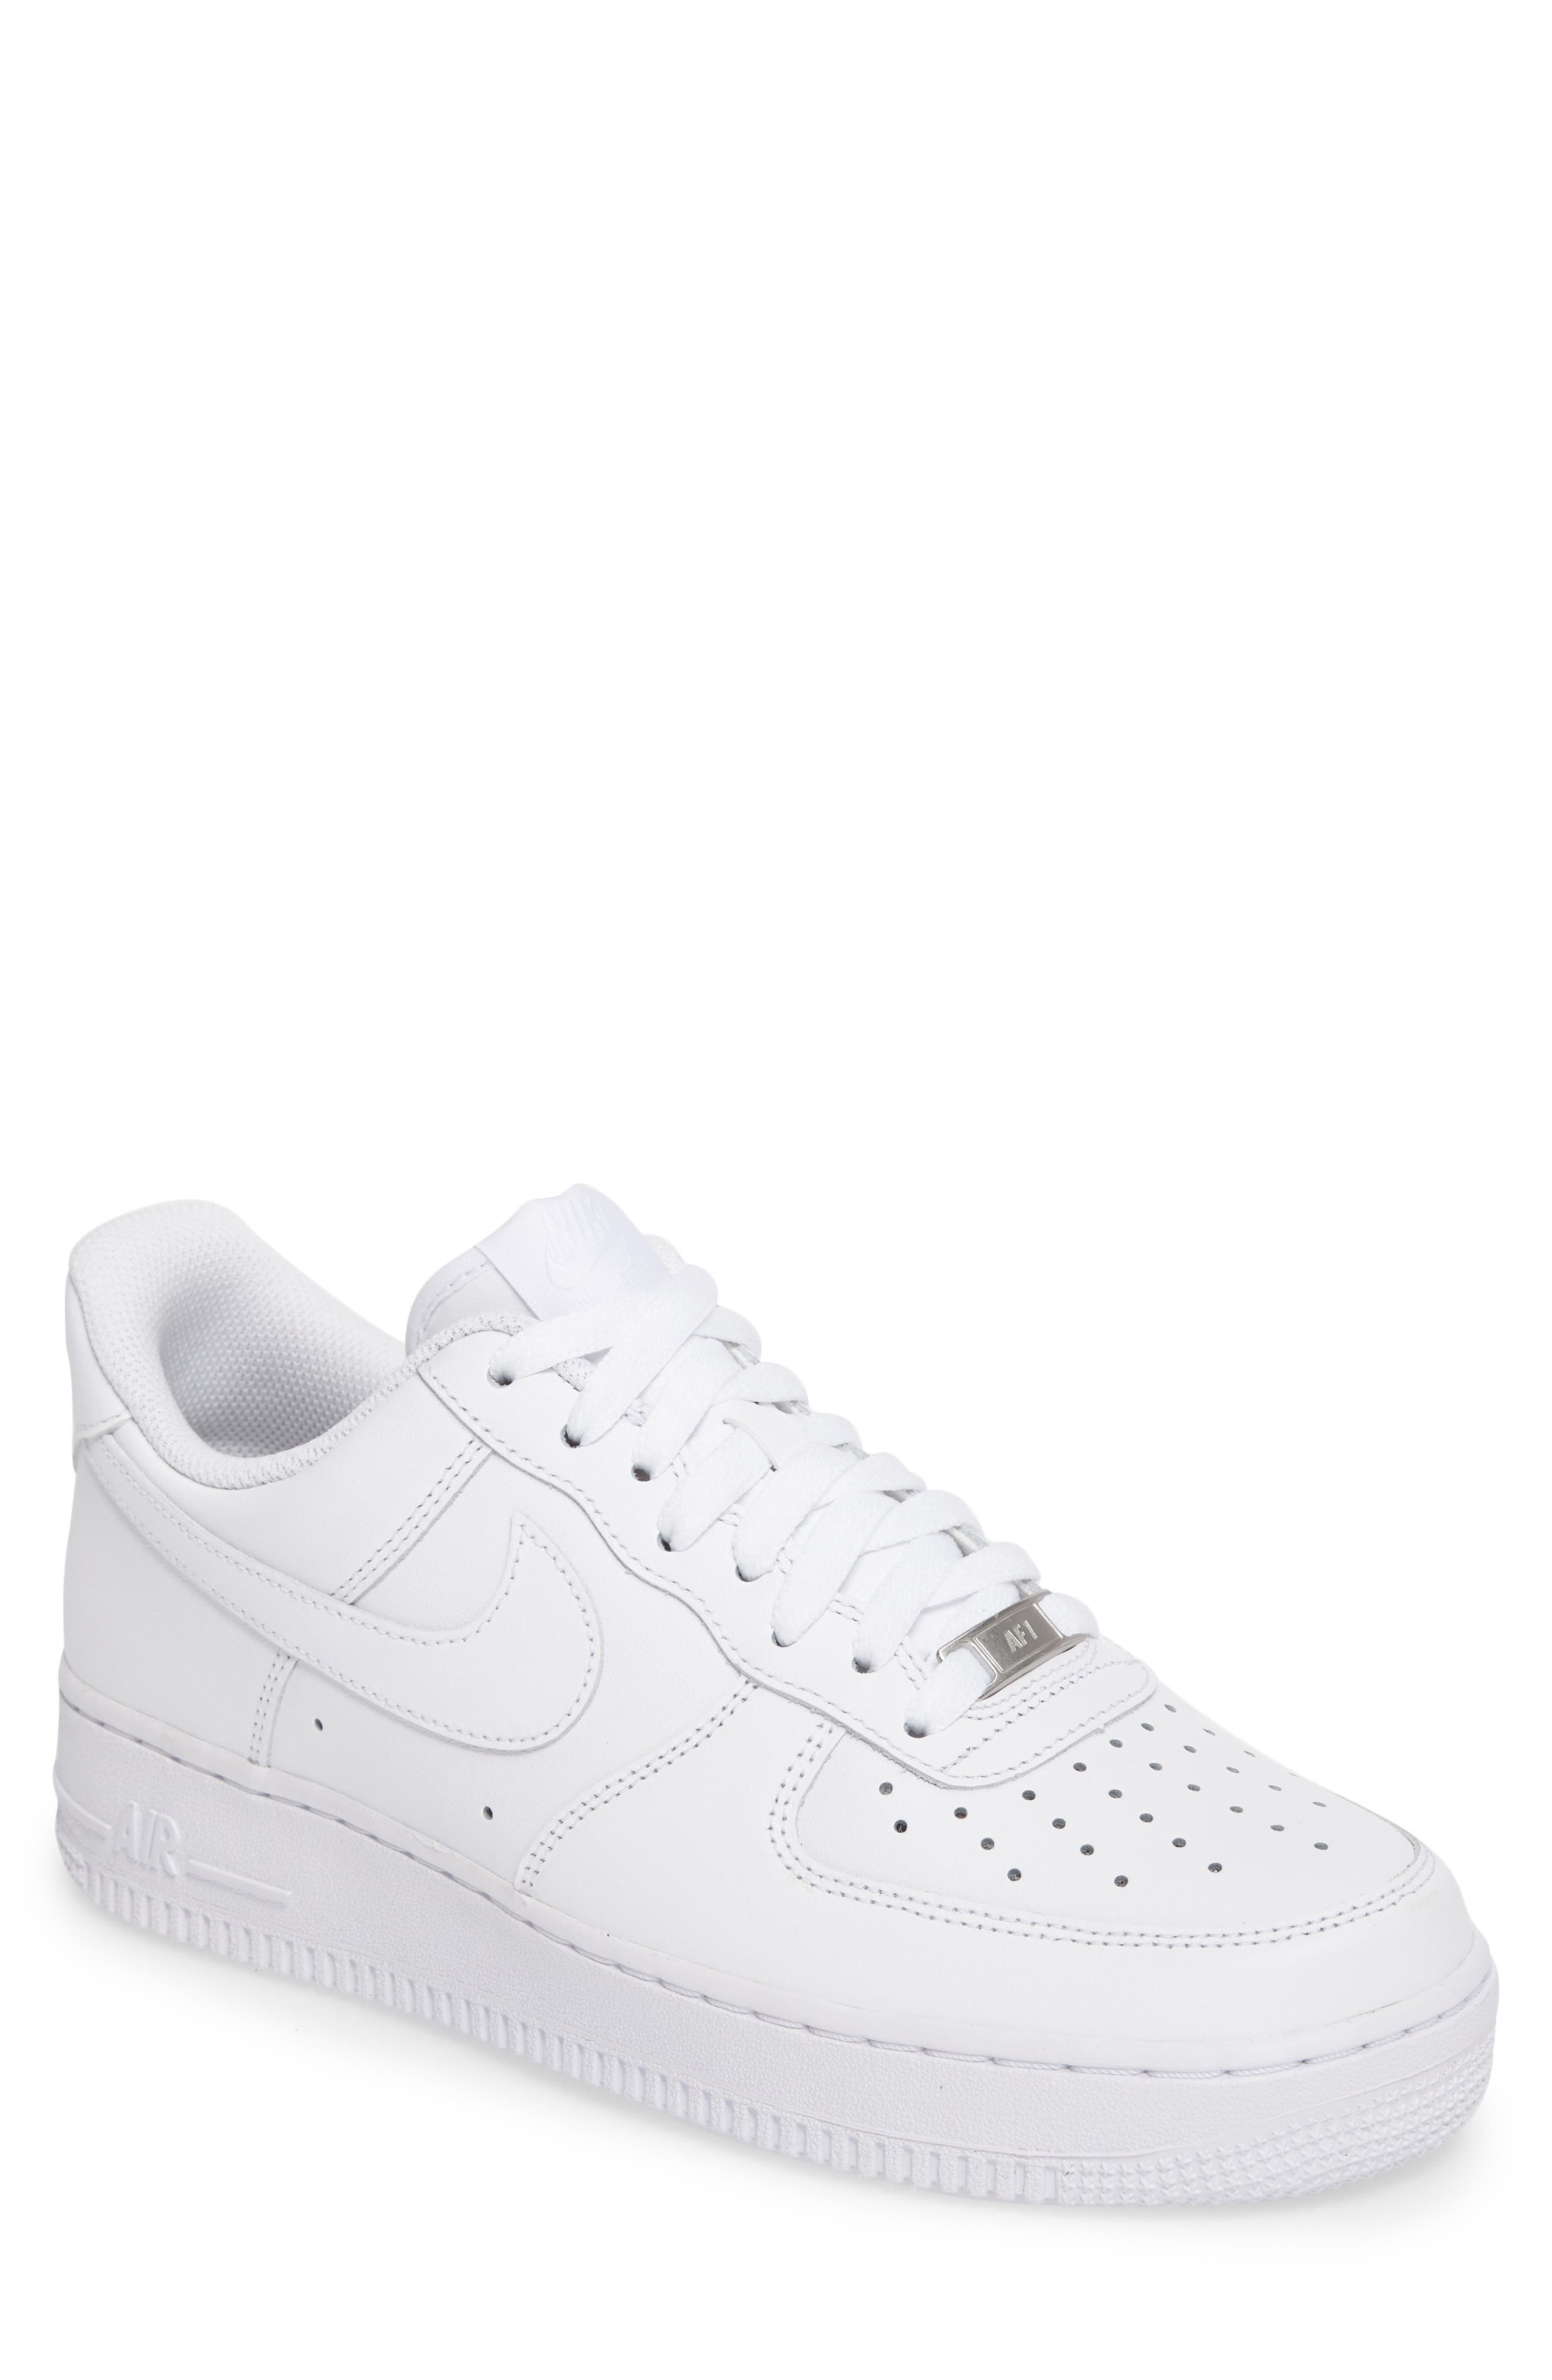 Air Force 1 '07 Sneaker,                         Main,                         color, White/ White